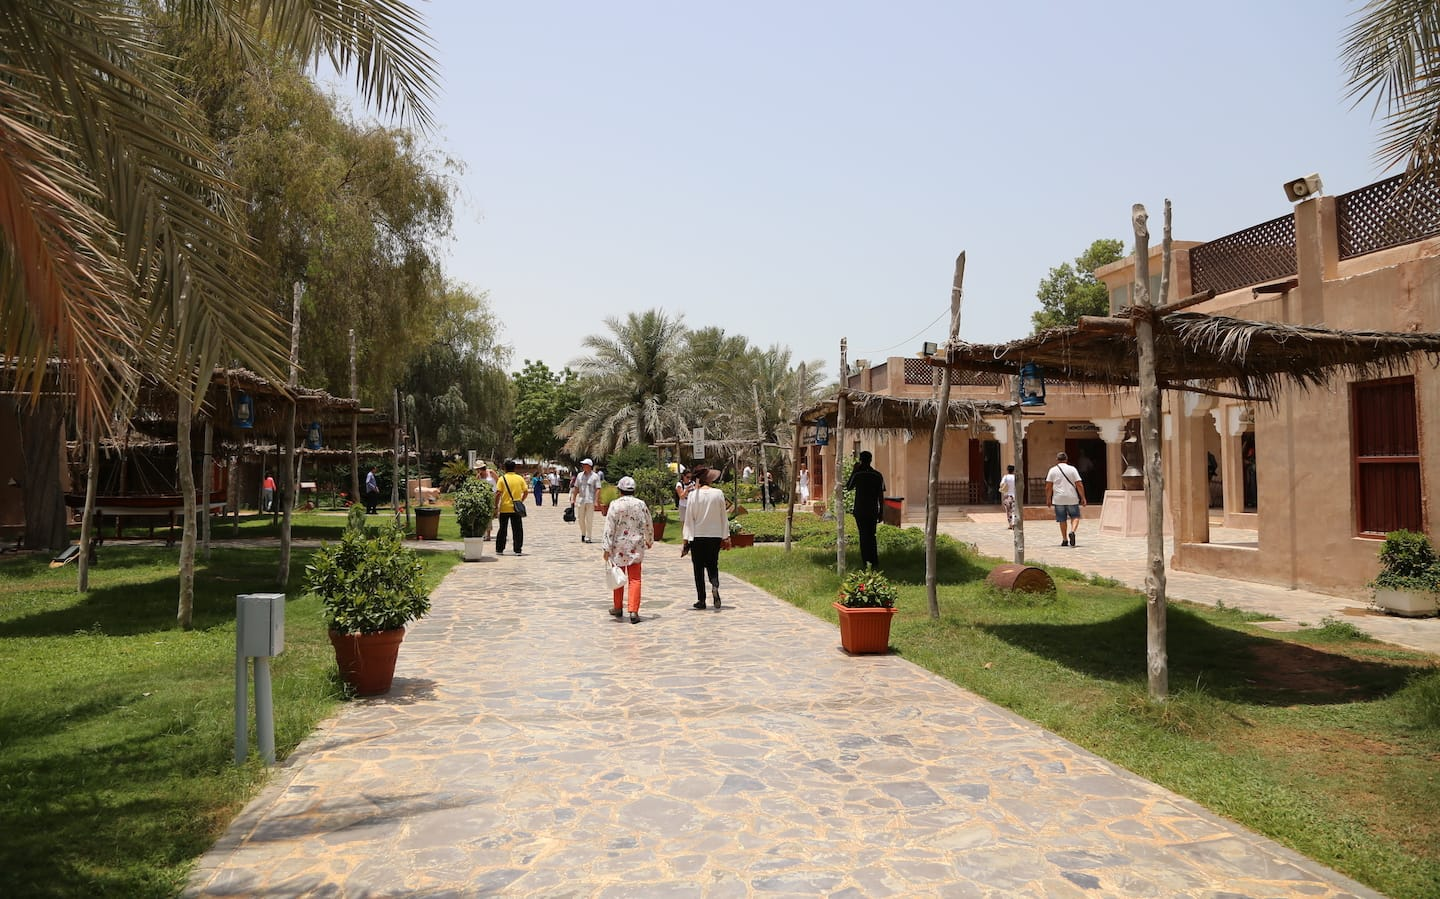 Visiting Heritage Village is one of the best free things to do in Abu Dhabi.